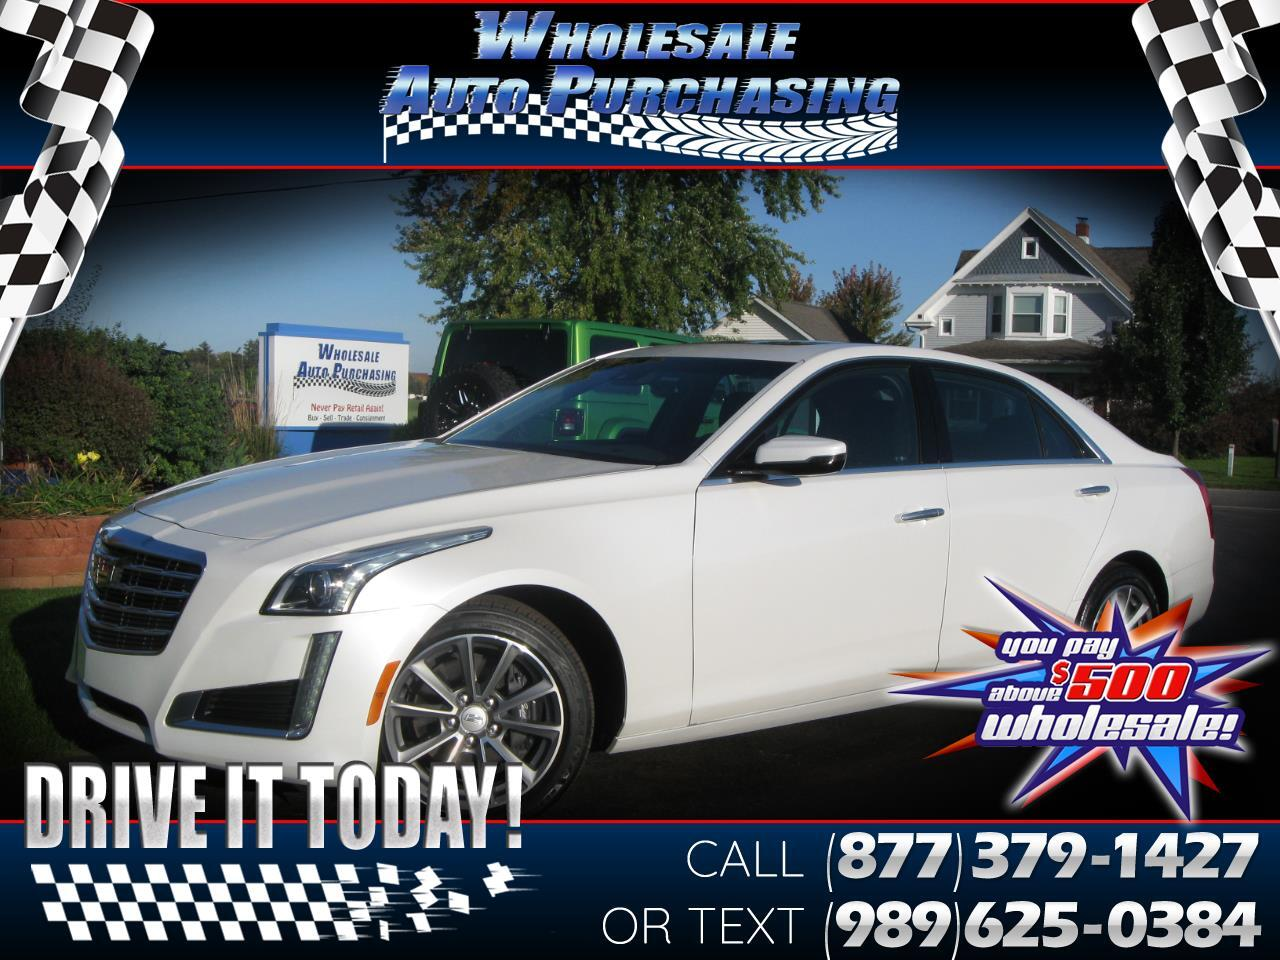 Cadillac CTS Sedan 4dr Sdn 3.6L Luxury AWD 2018